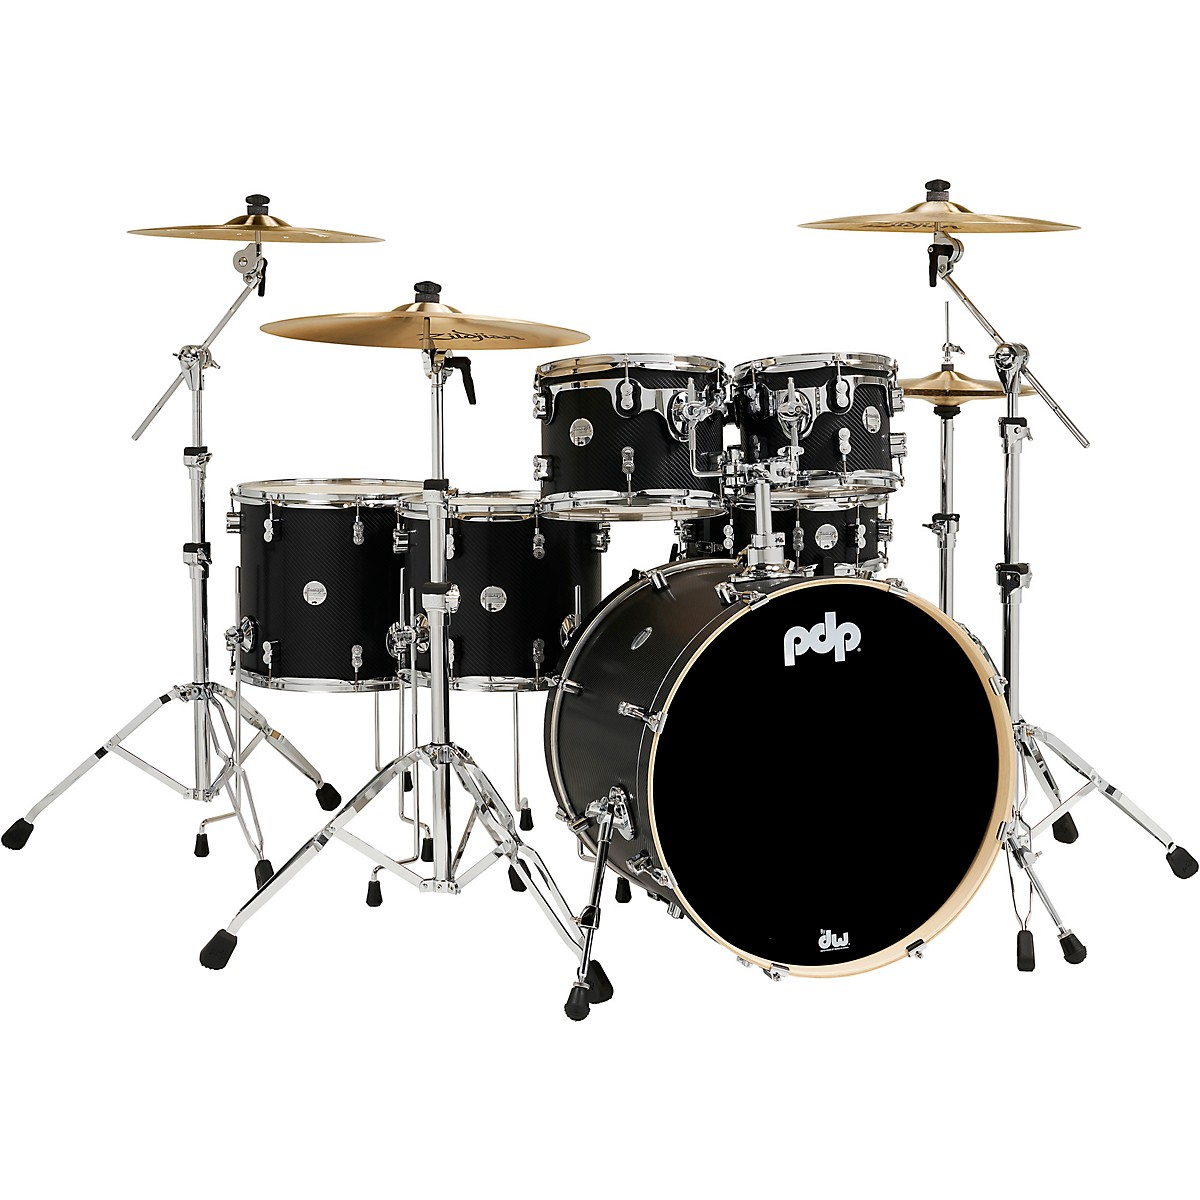 PDP by DW Concept Maple 6-Piece Shell Pack with Chrome Hardware